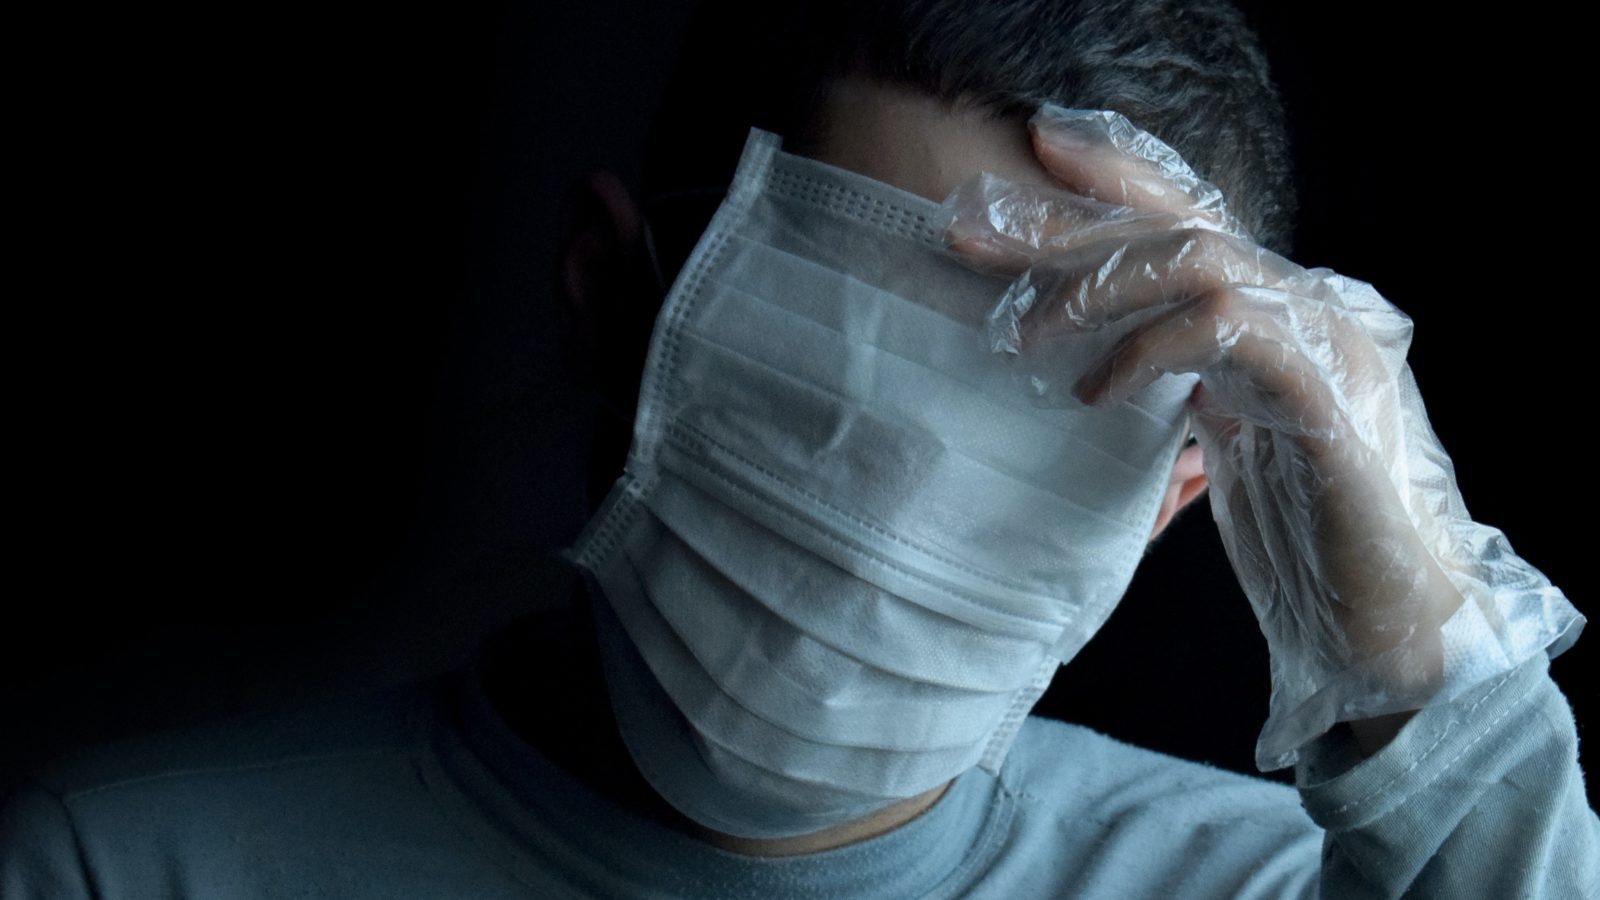 A man wears two face masks that cover his face and eyes in front of a black background.